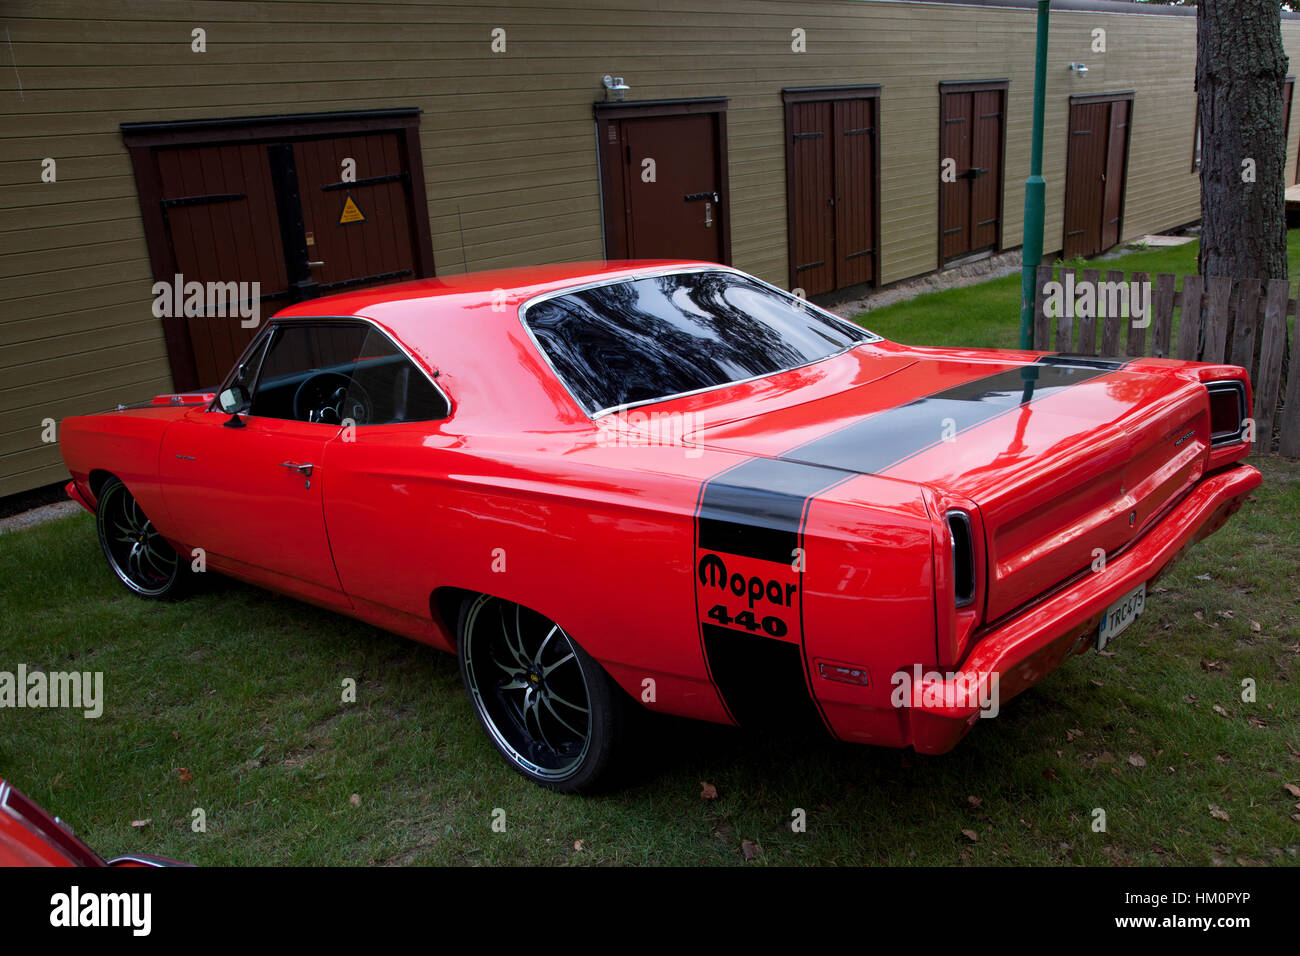 Car meet with American muscle cars in Sweden Stock Photo, Royalty ...